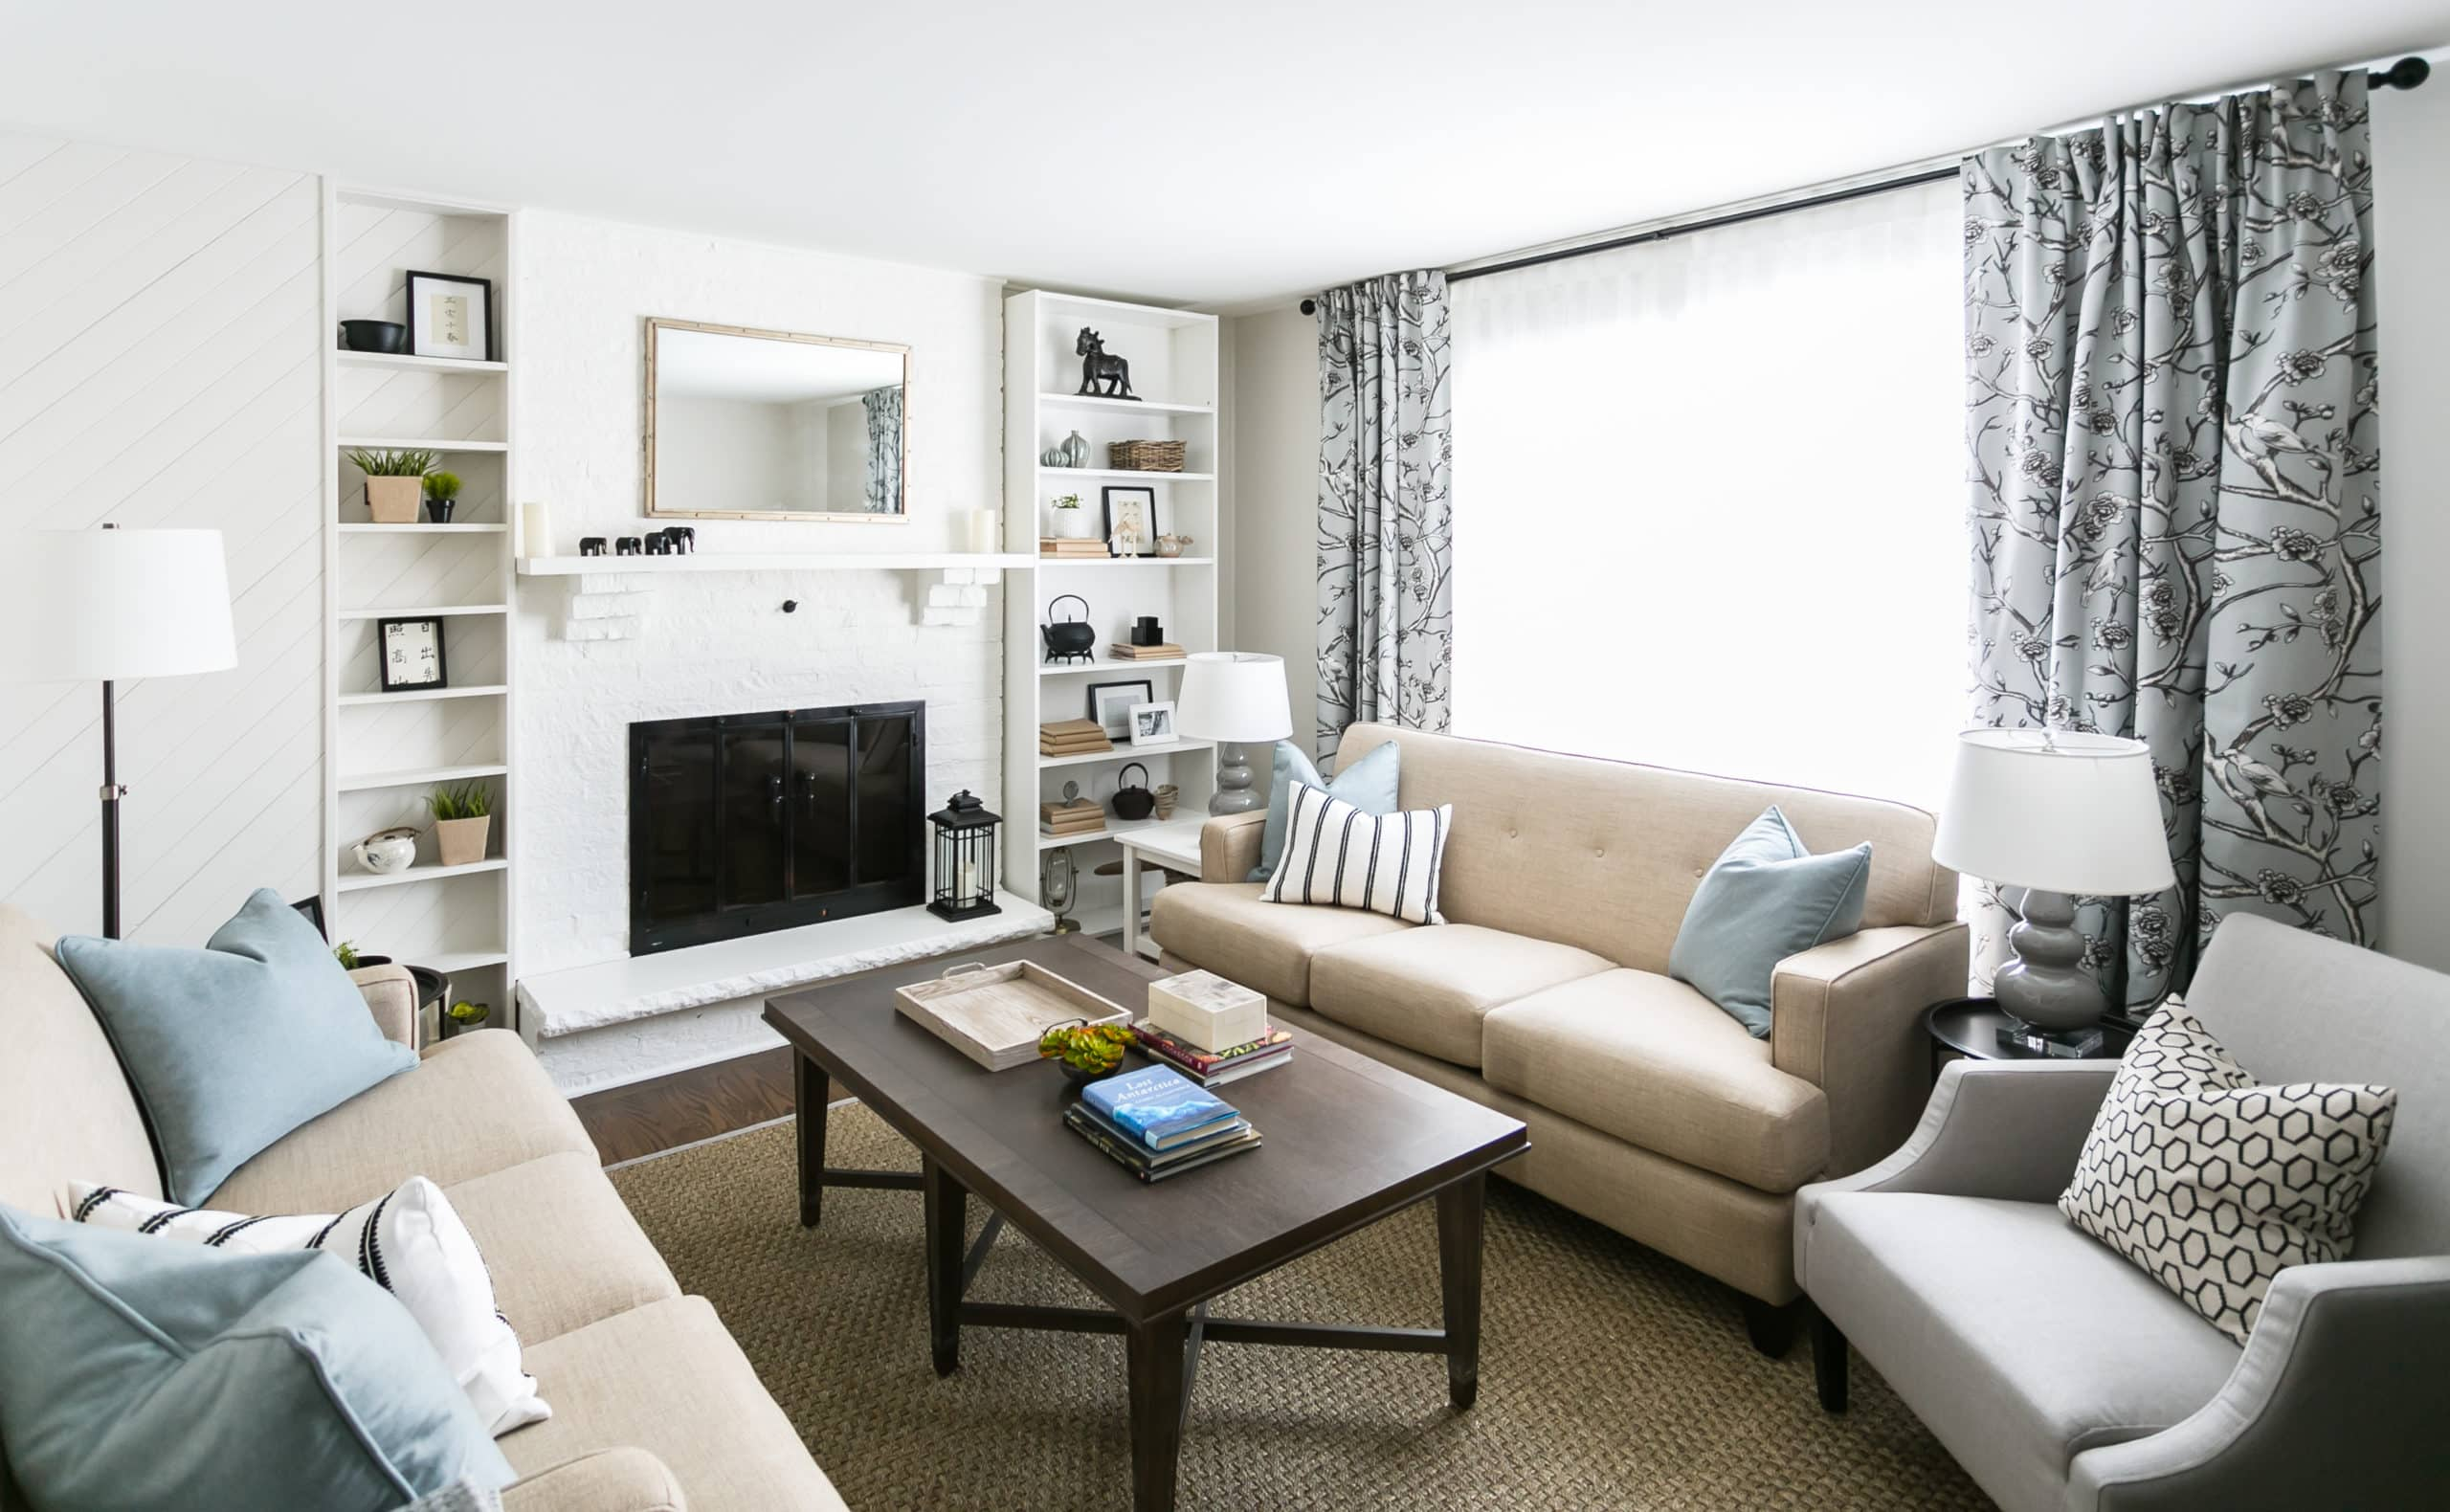 Cozy living room with a white fireplace